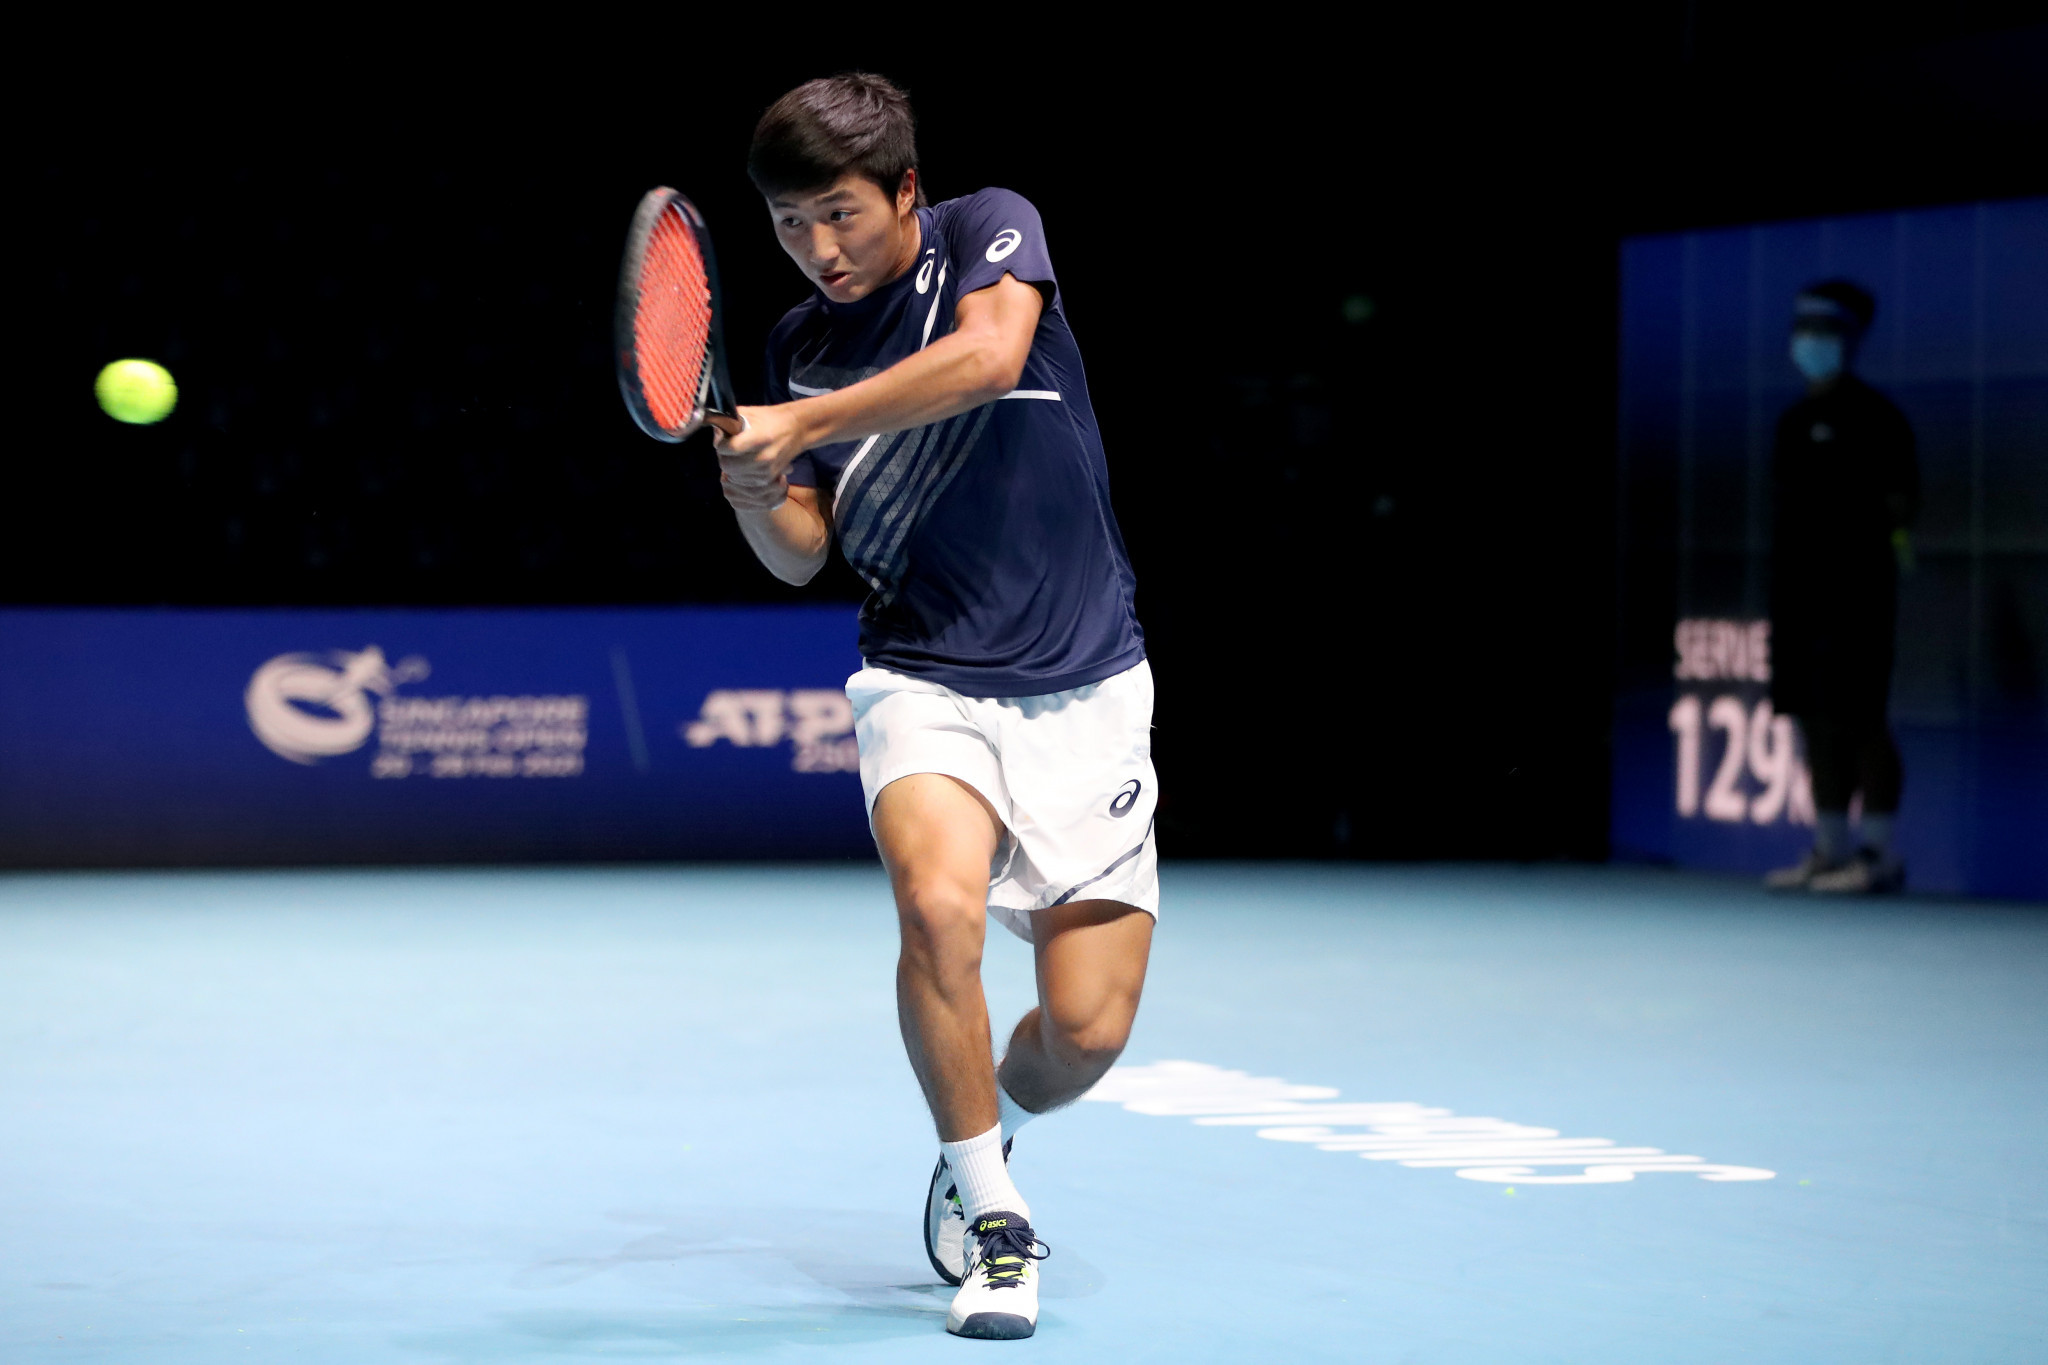 Mochizuki features in Japan's win against Pakistan in Davis Cup World Group I